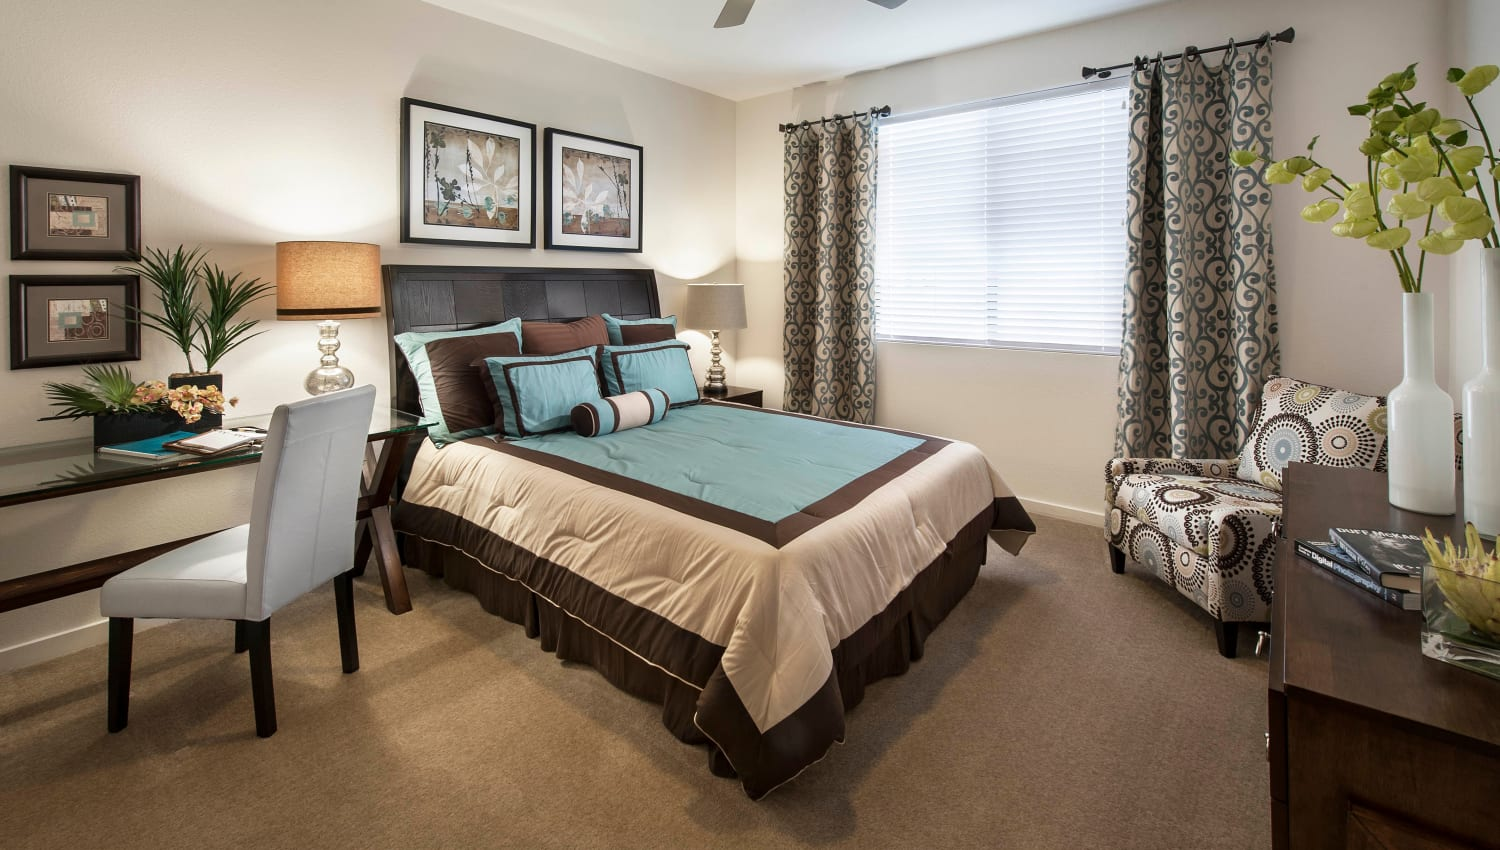 Draped bay windows and plush carpeting in a model home's master bedroom at Redstone at SanTan Village in Gilbert, Arizona